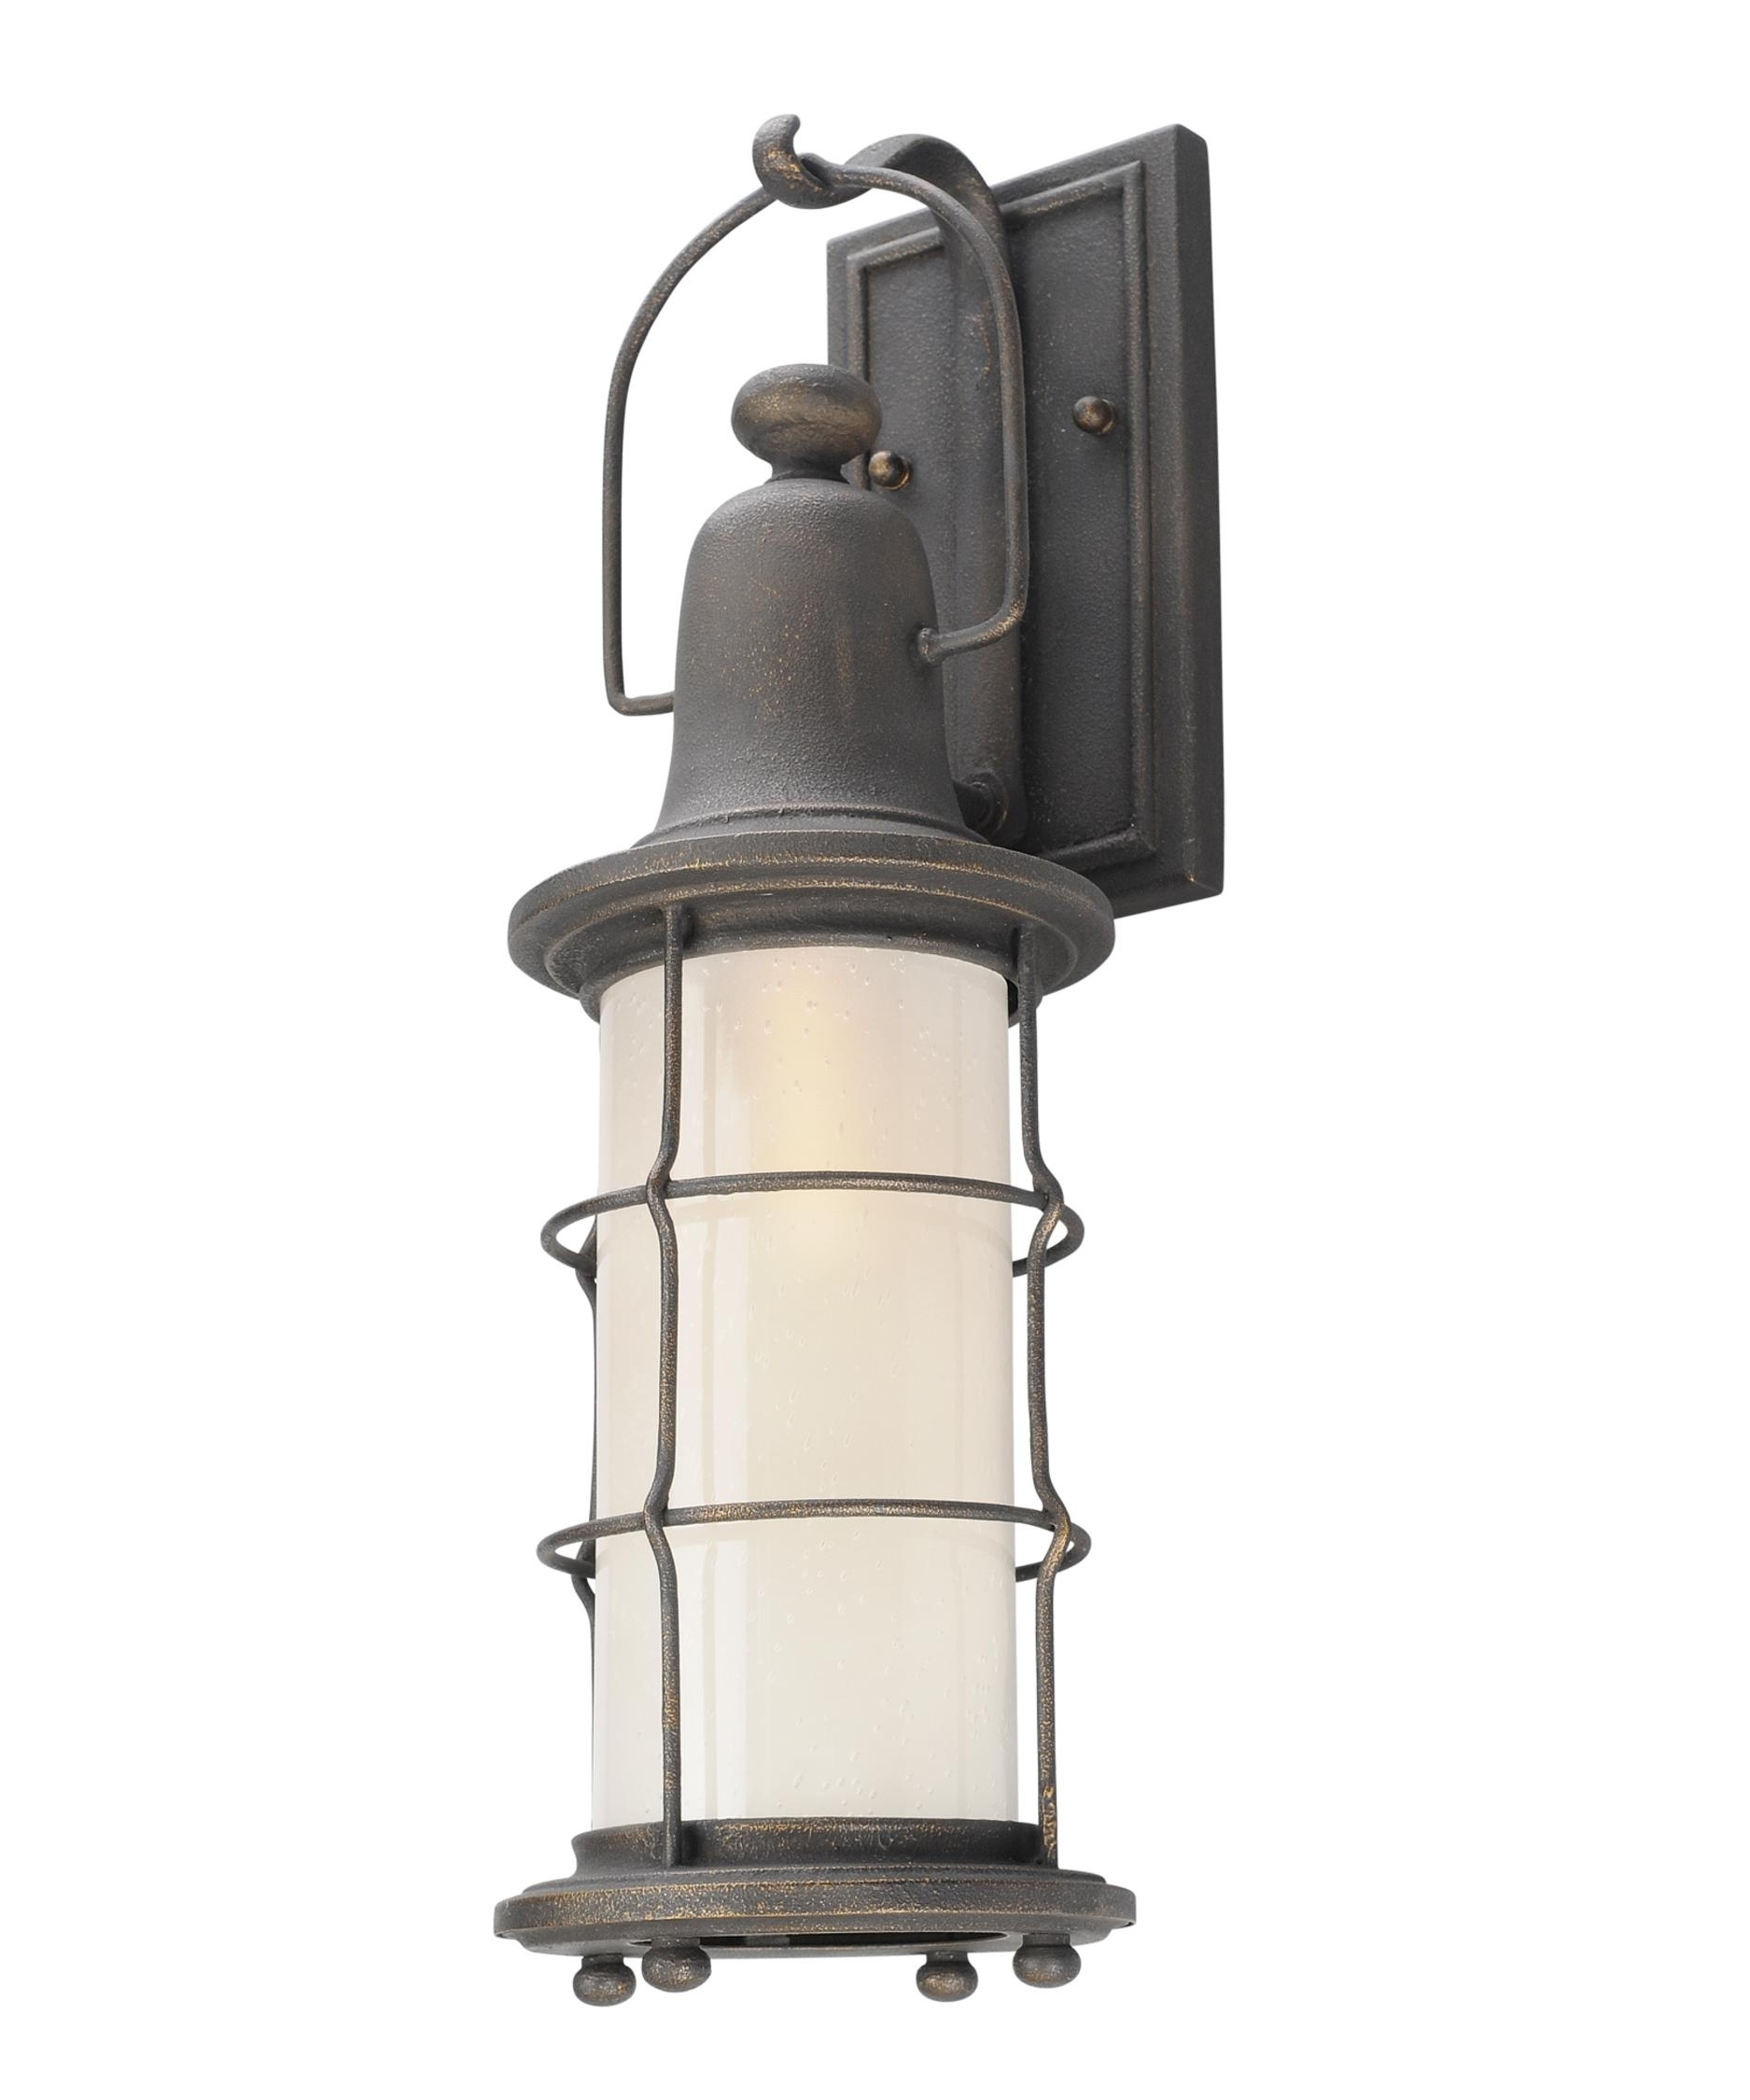 Outdoor Nautical Lanterns With Most Recent Troy Lighting B4441 Maritime 6 Inch Wide 1 Light Outdoor Wall Light (View 17 of 20)